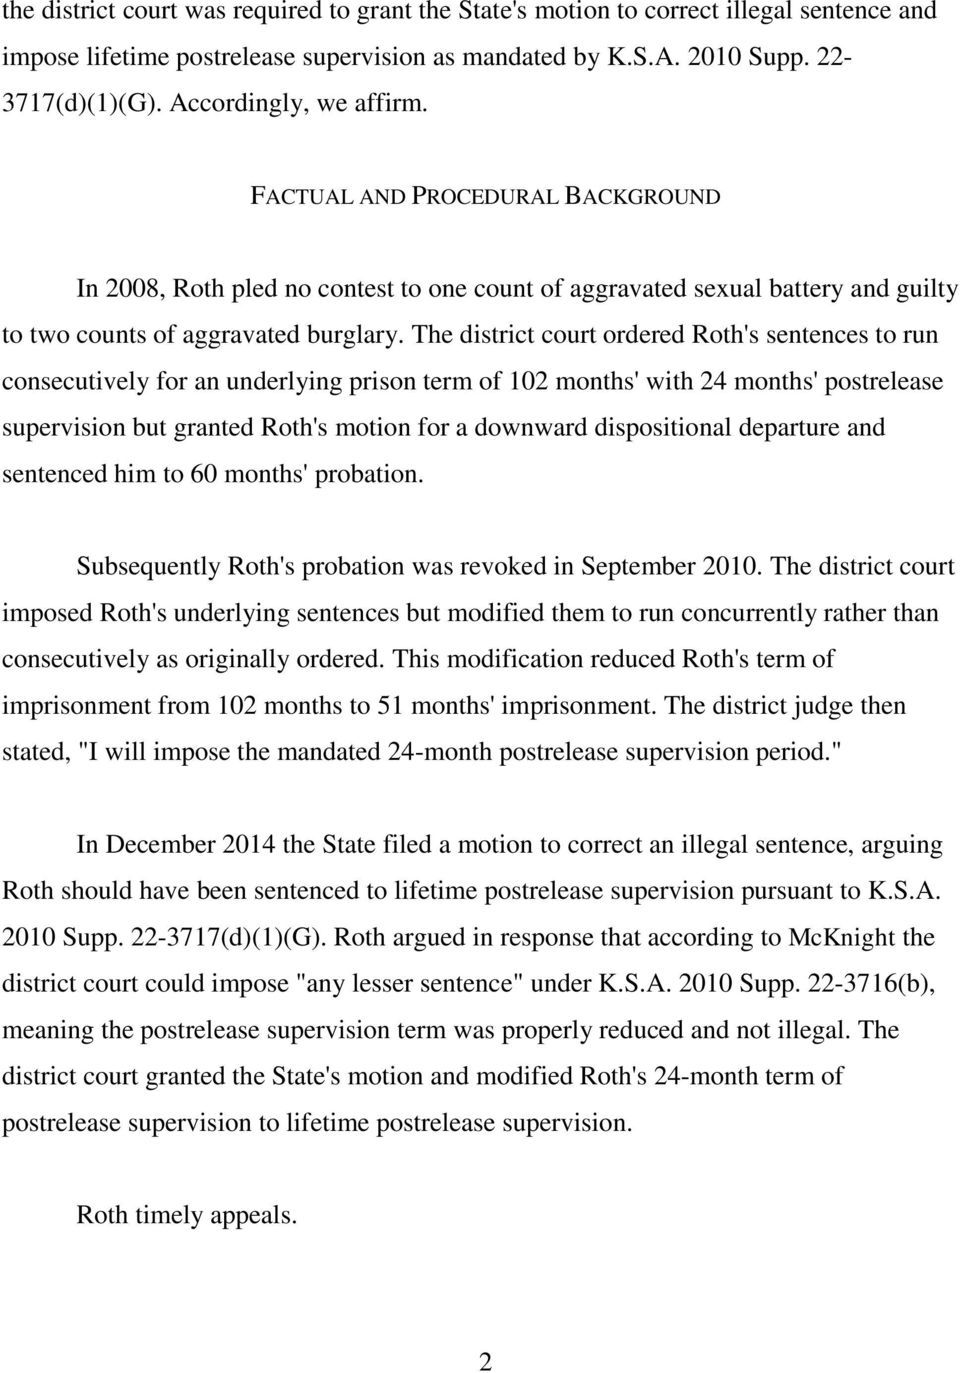 The district court ordered Roth's sentences to run consecutively for an underlying prison term of 102 months' with 24 months' postrelease supervision but granted Roth's motion for a downward